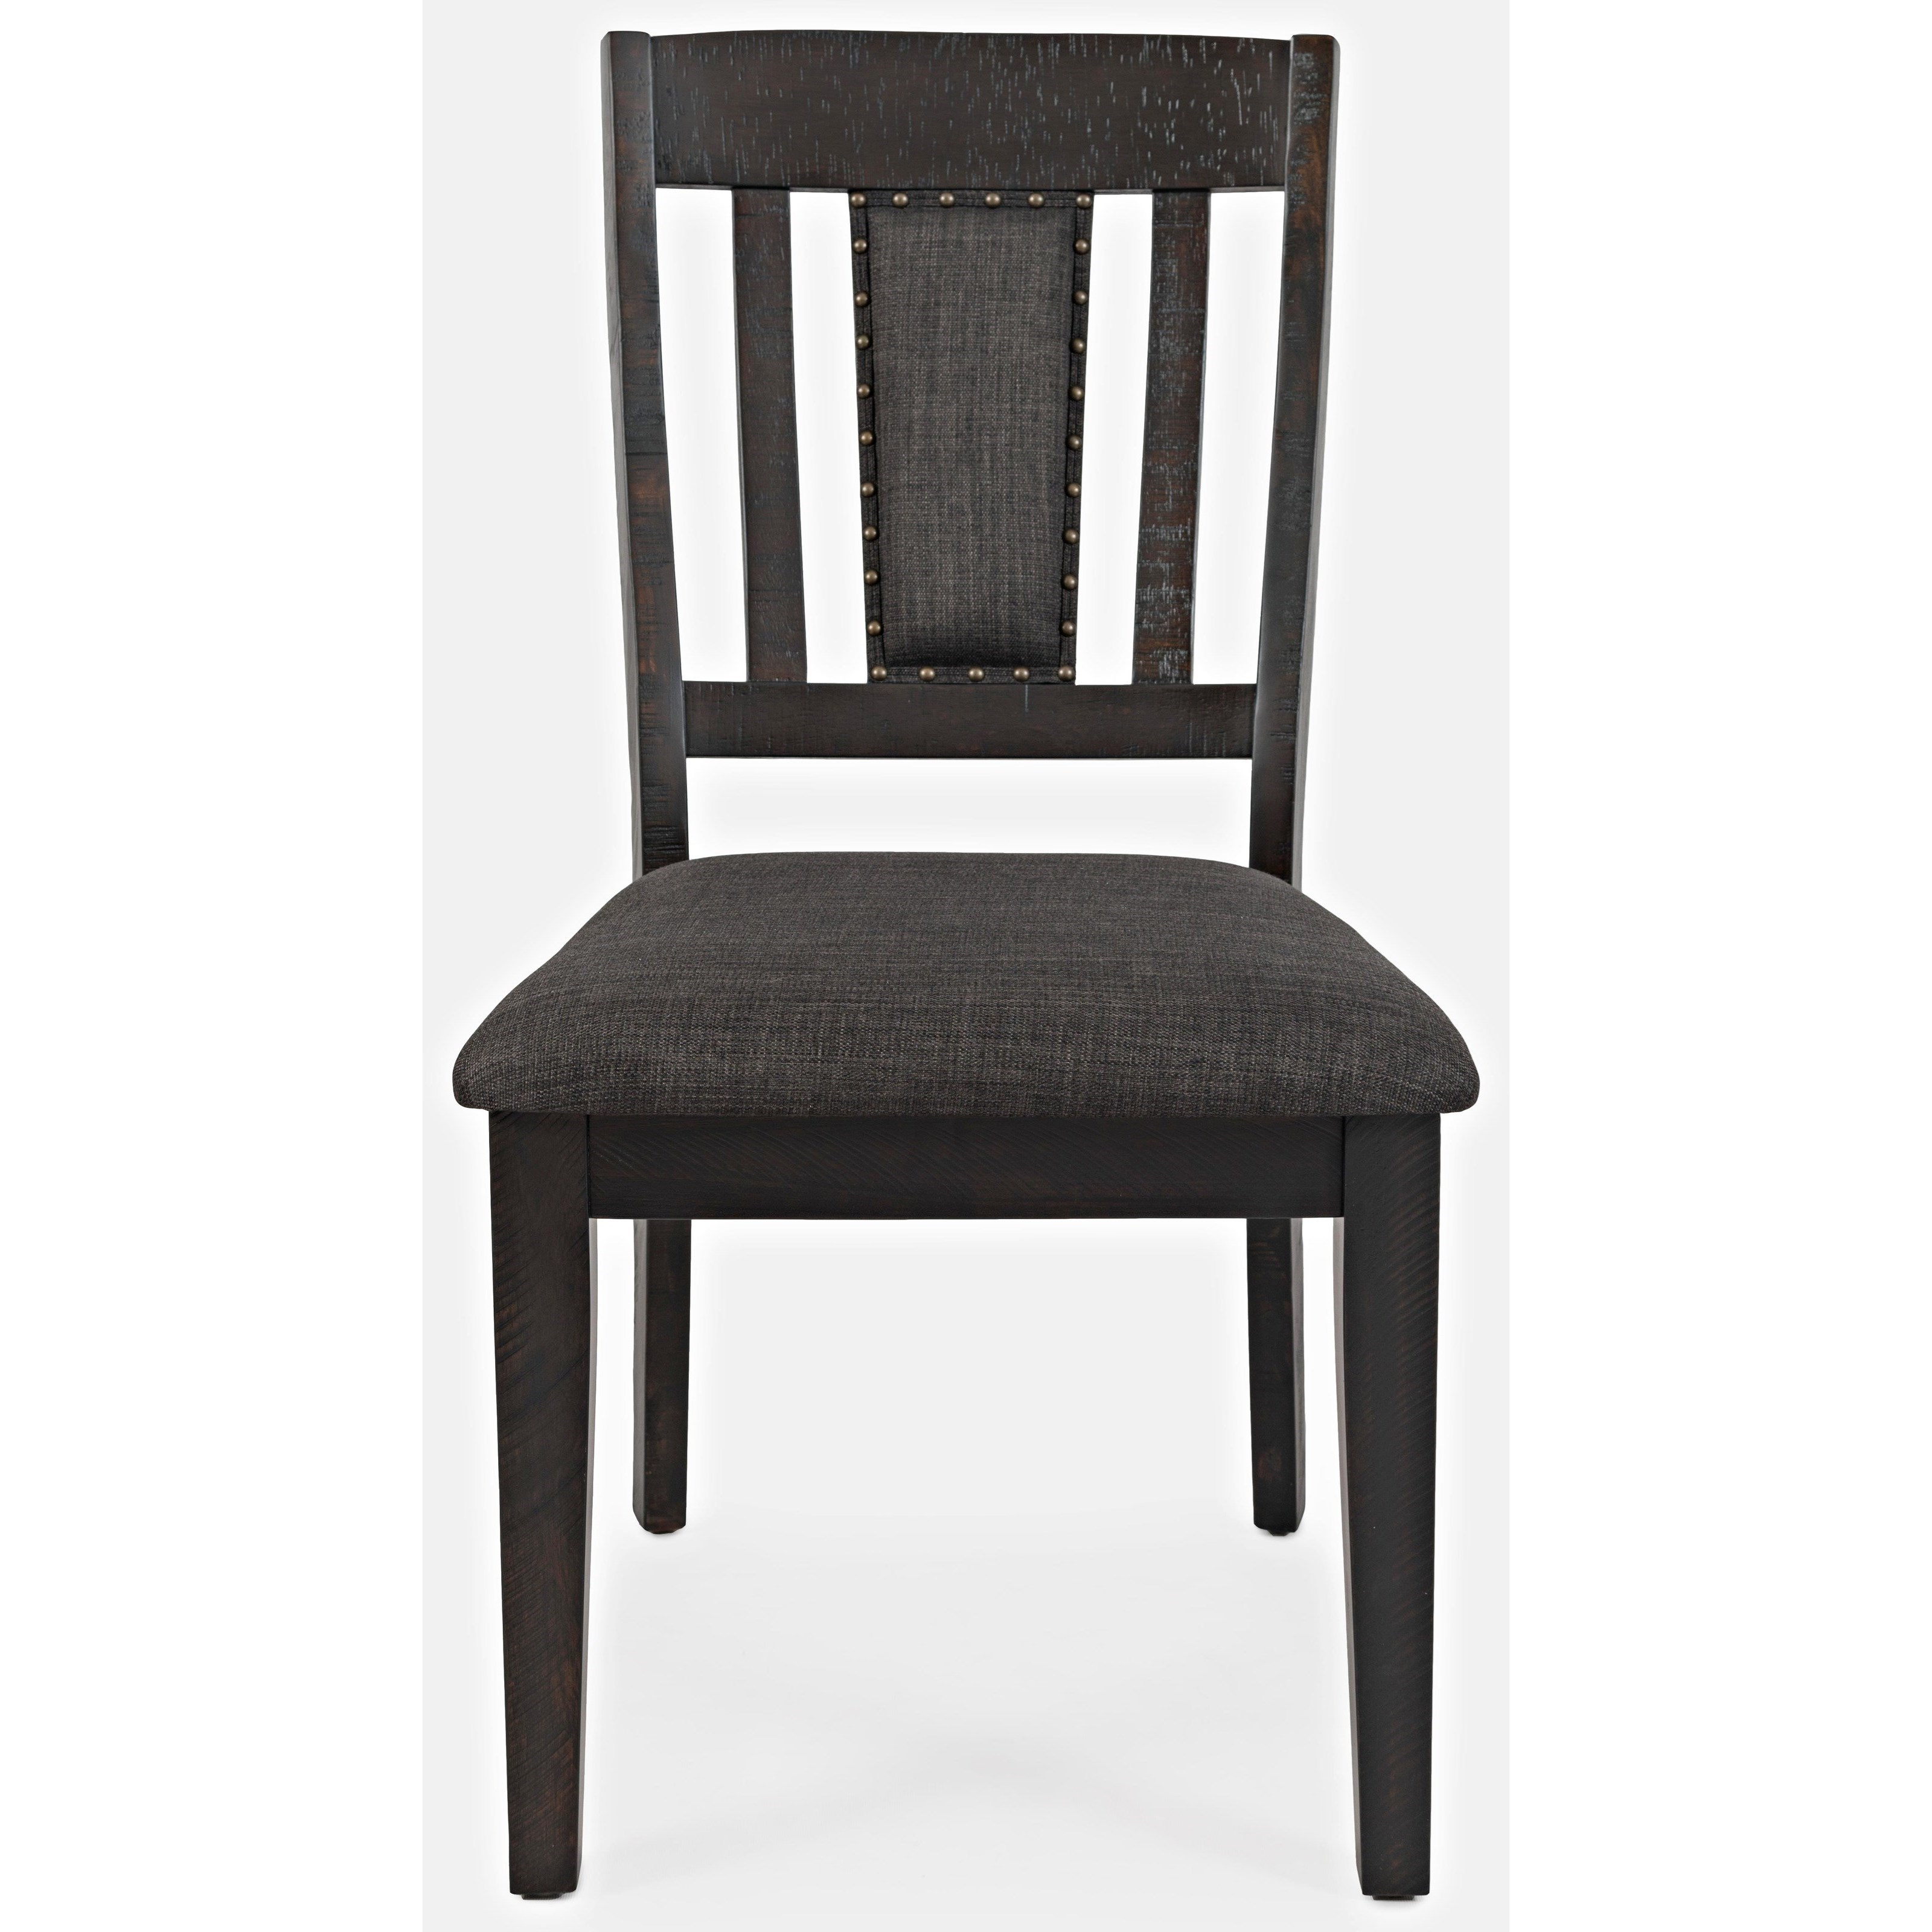 American Rustics Upholstered Slatback Dining Chair by Jofran at Sparks HomeStore